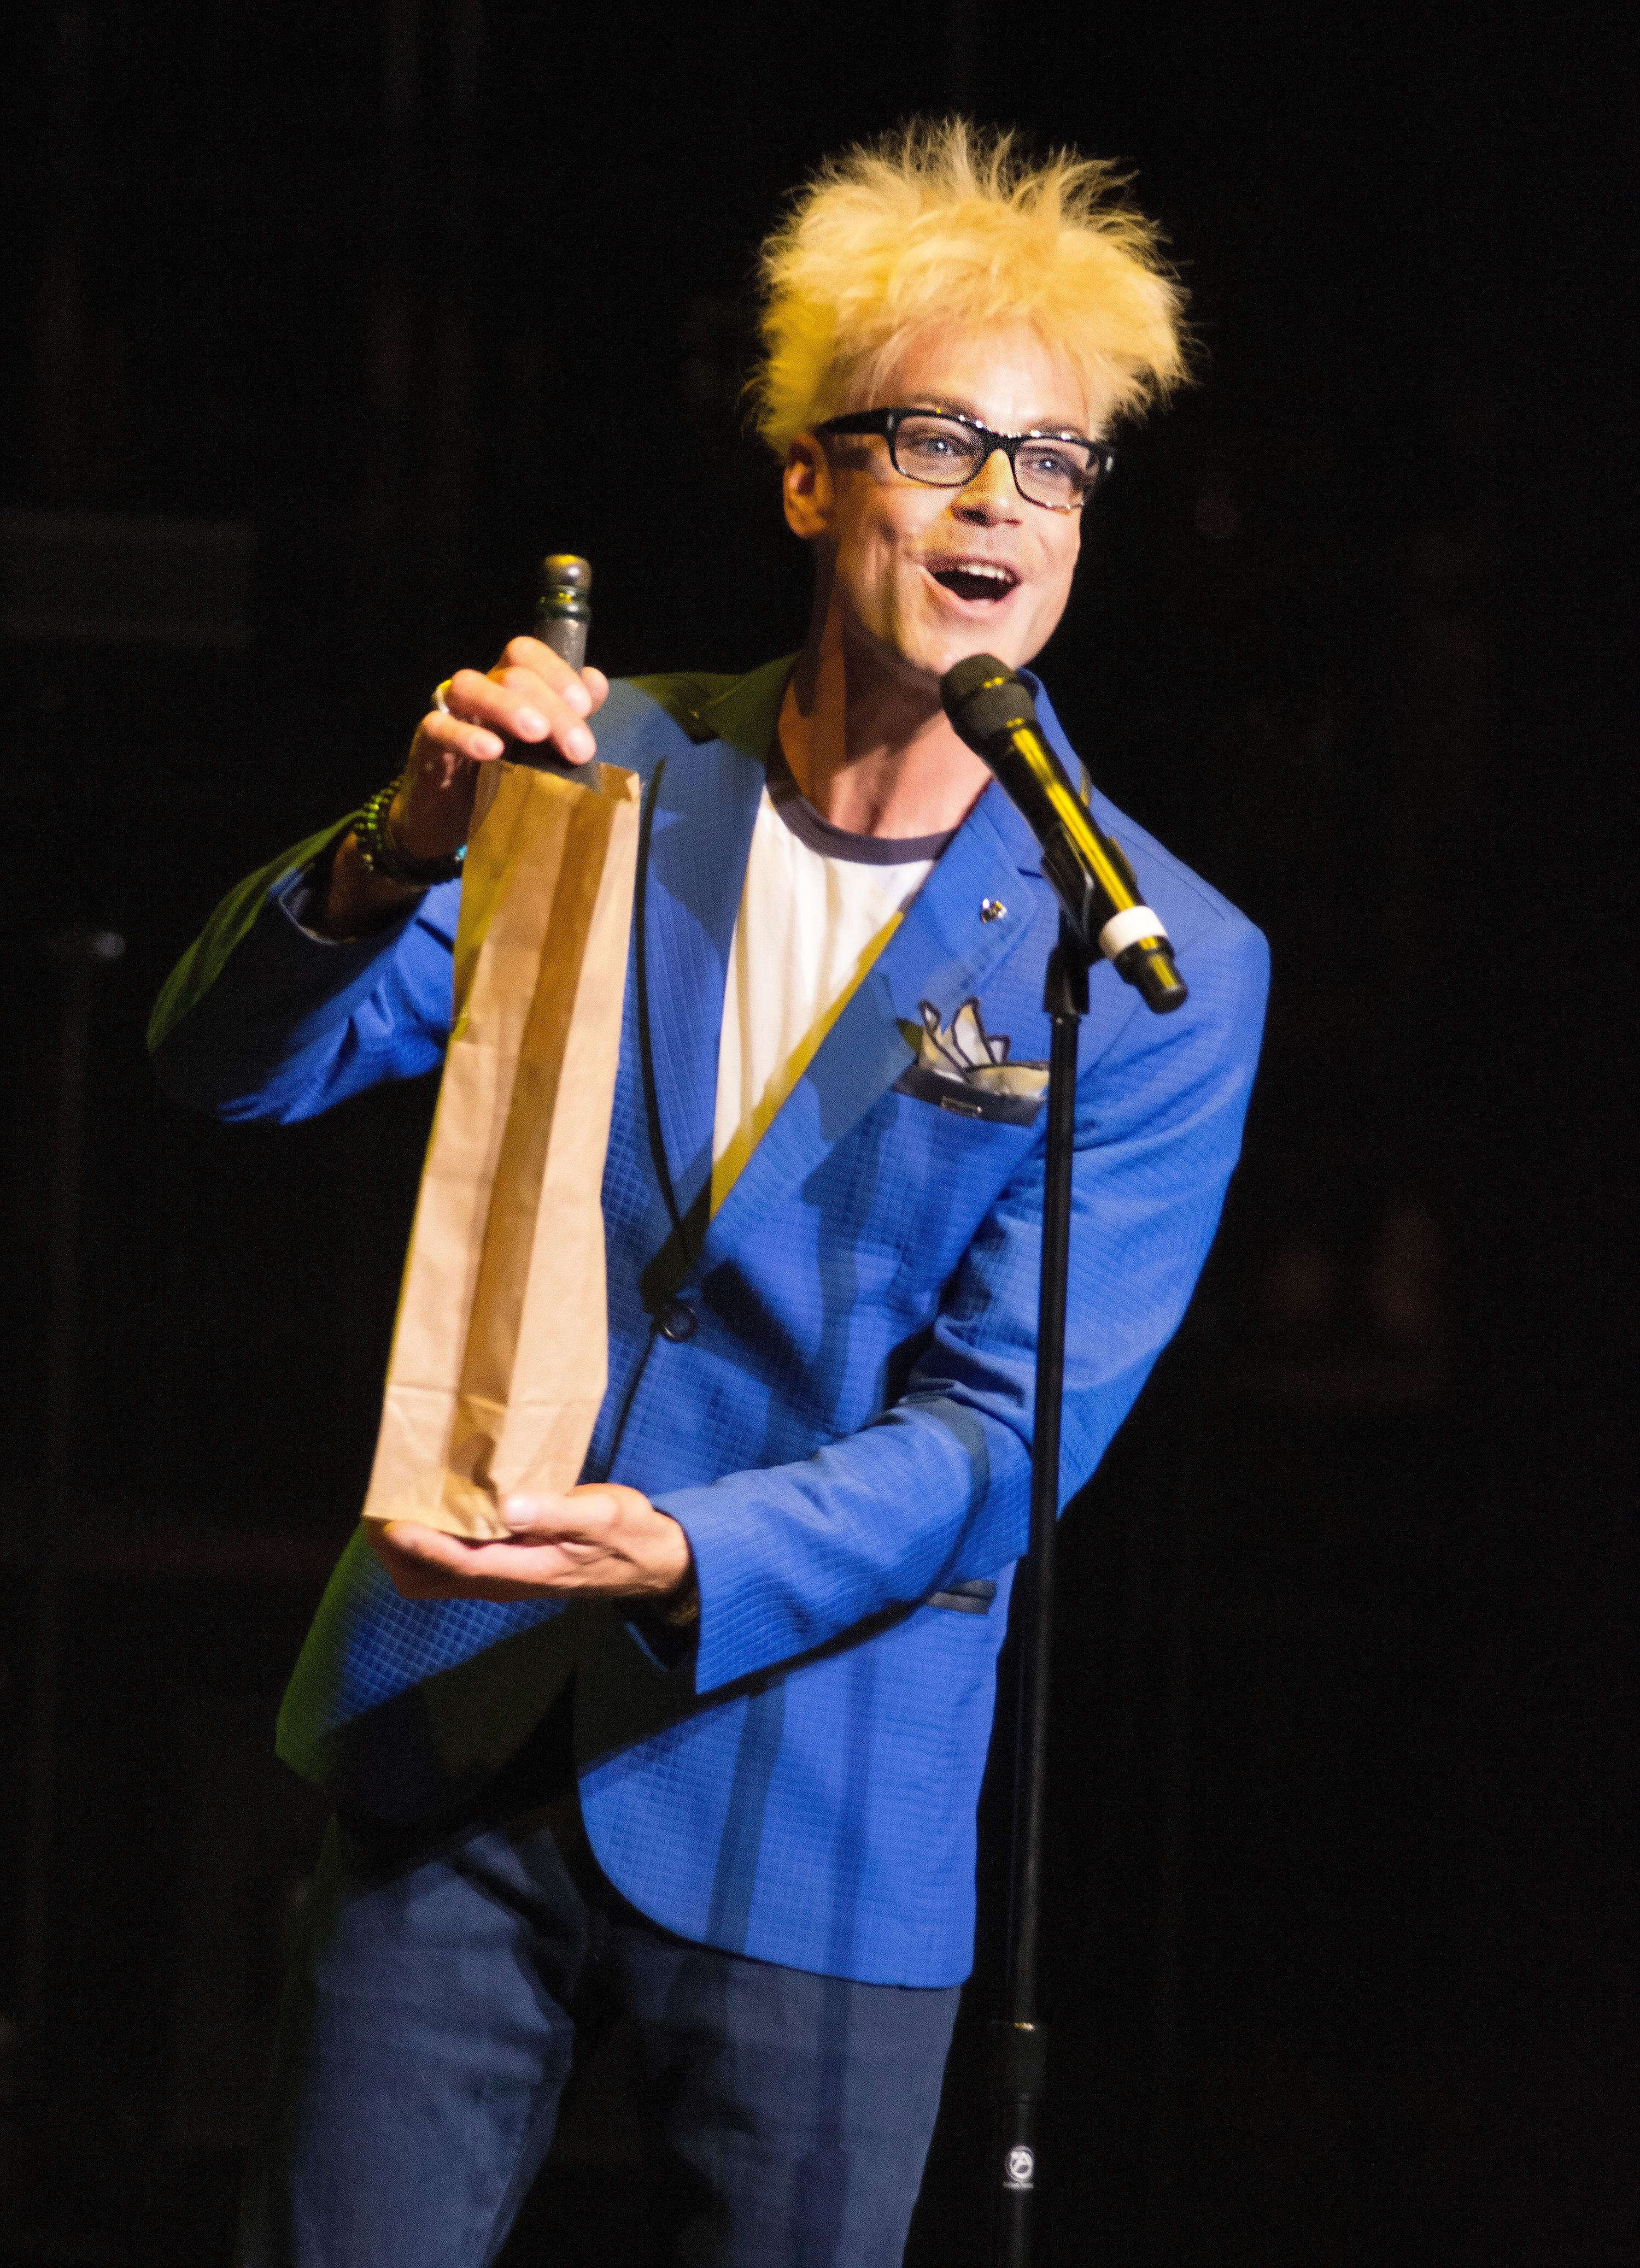 "Murray Sawchuck performs during the ""Vegas Cares"" benefit concert at the Venetian Theatre in the Venetian hotel-casino at 3355 S. Las Vegas Blvd in Las Vegas on Sunday, Nov 5, 2017. The concert was sponsored by a group of Las Vegas entertainers, producers and business professionals to honor the victims and first responders from shooting at the Route 91 Harvest festival. (Photo/Las Vegas News Bureau/Bill Hughes)"